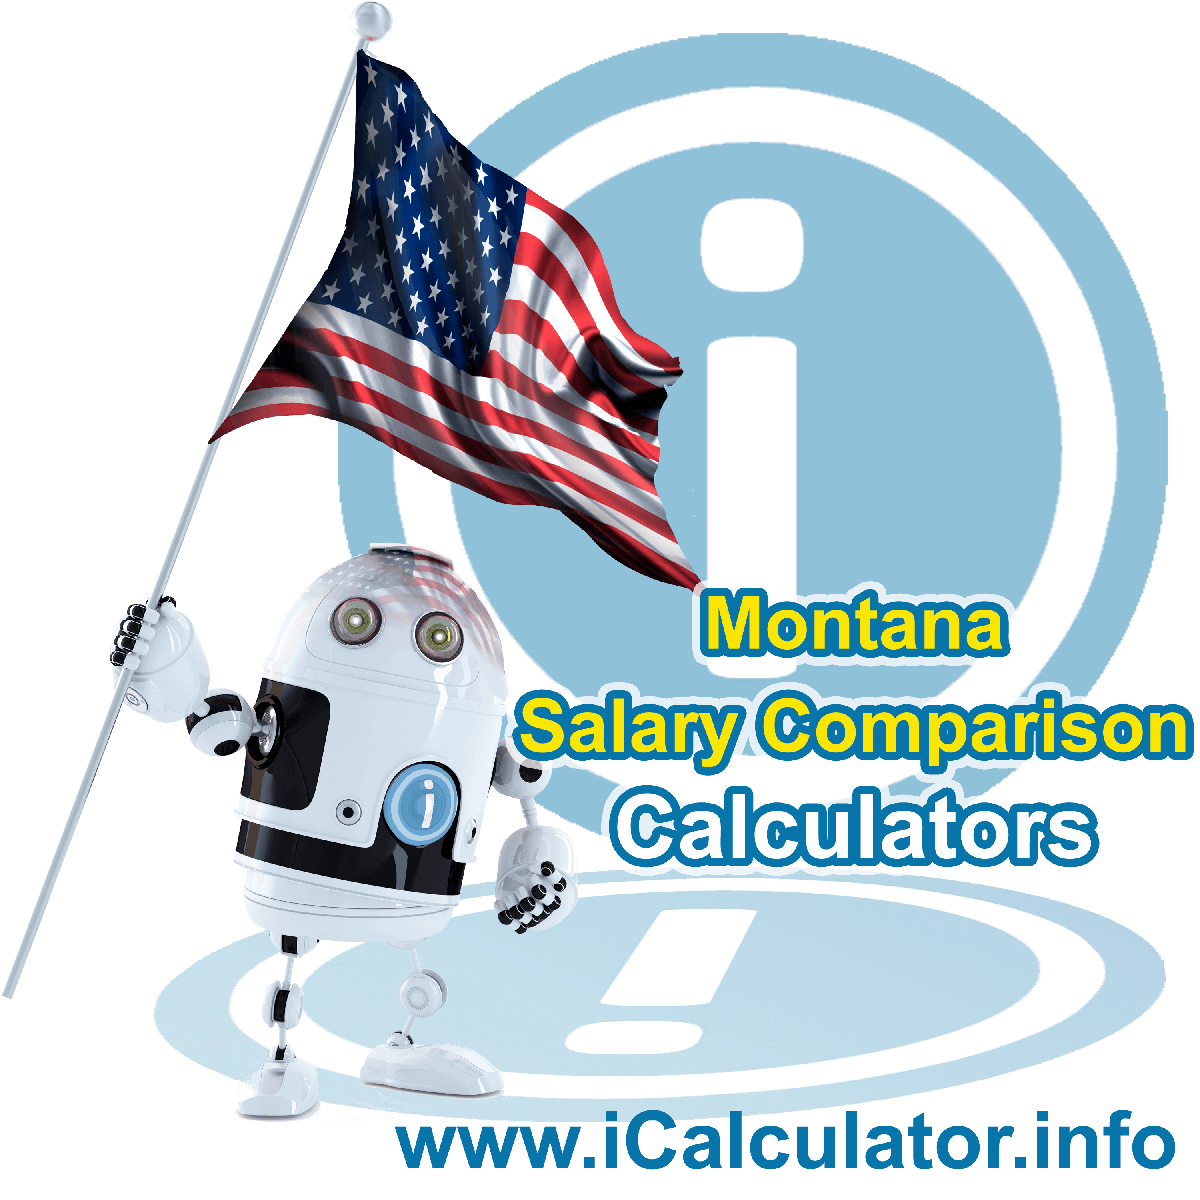 Montana Salary Comparison Calculator 2021 | iCalculator™ | The Montana Salary Comparison Calculator allows you to quickly calculate and compare upto 6 salaries in Montana or between other states for the 2021 tax year and historical tax years. Its an excellent tool for jobseekers, pay raise comparison and comparison of salaries between different US States